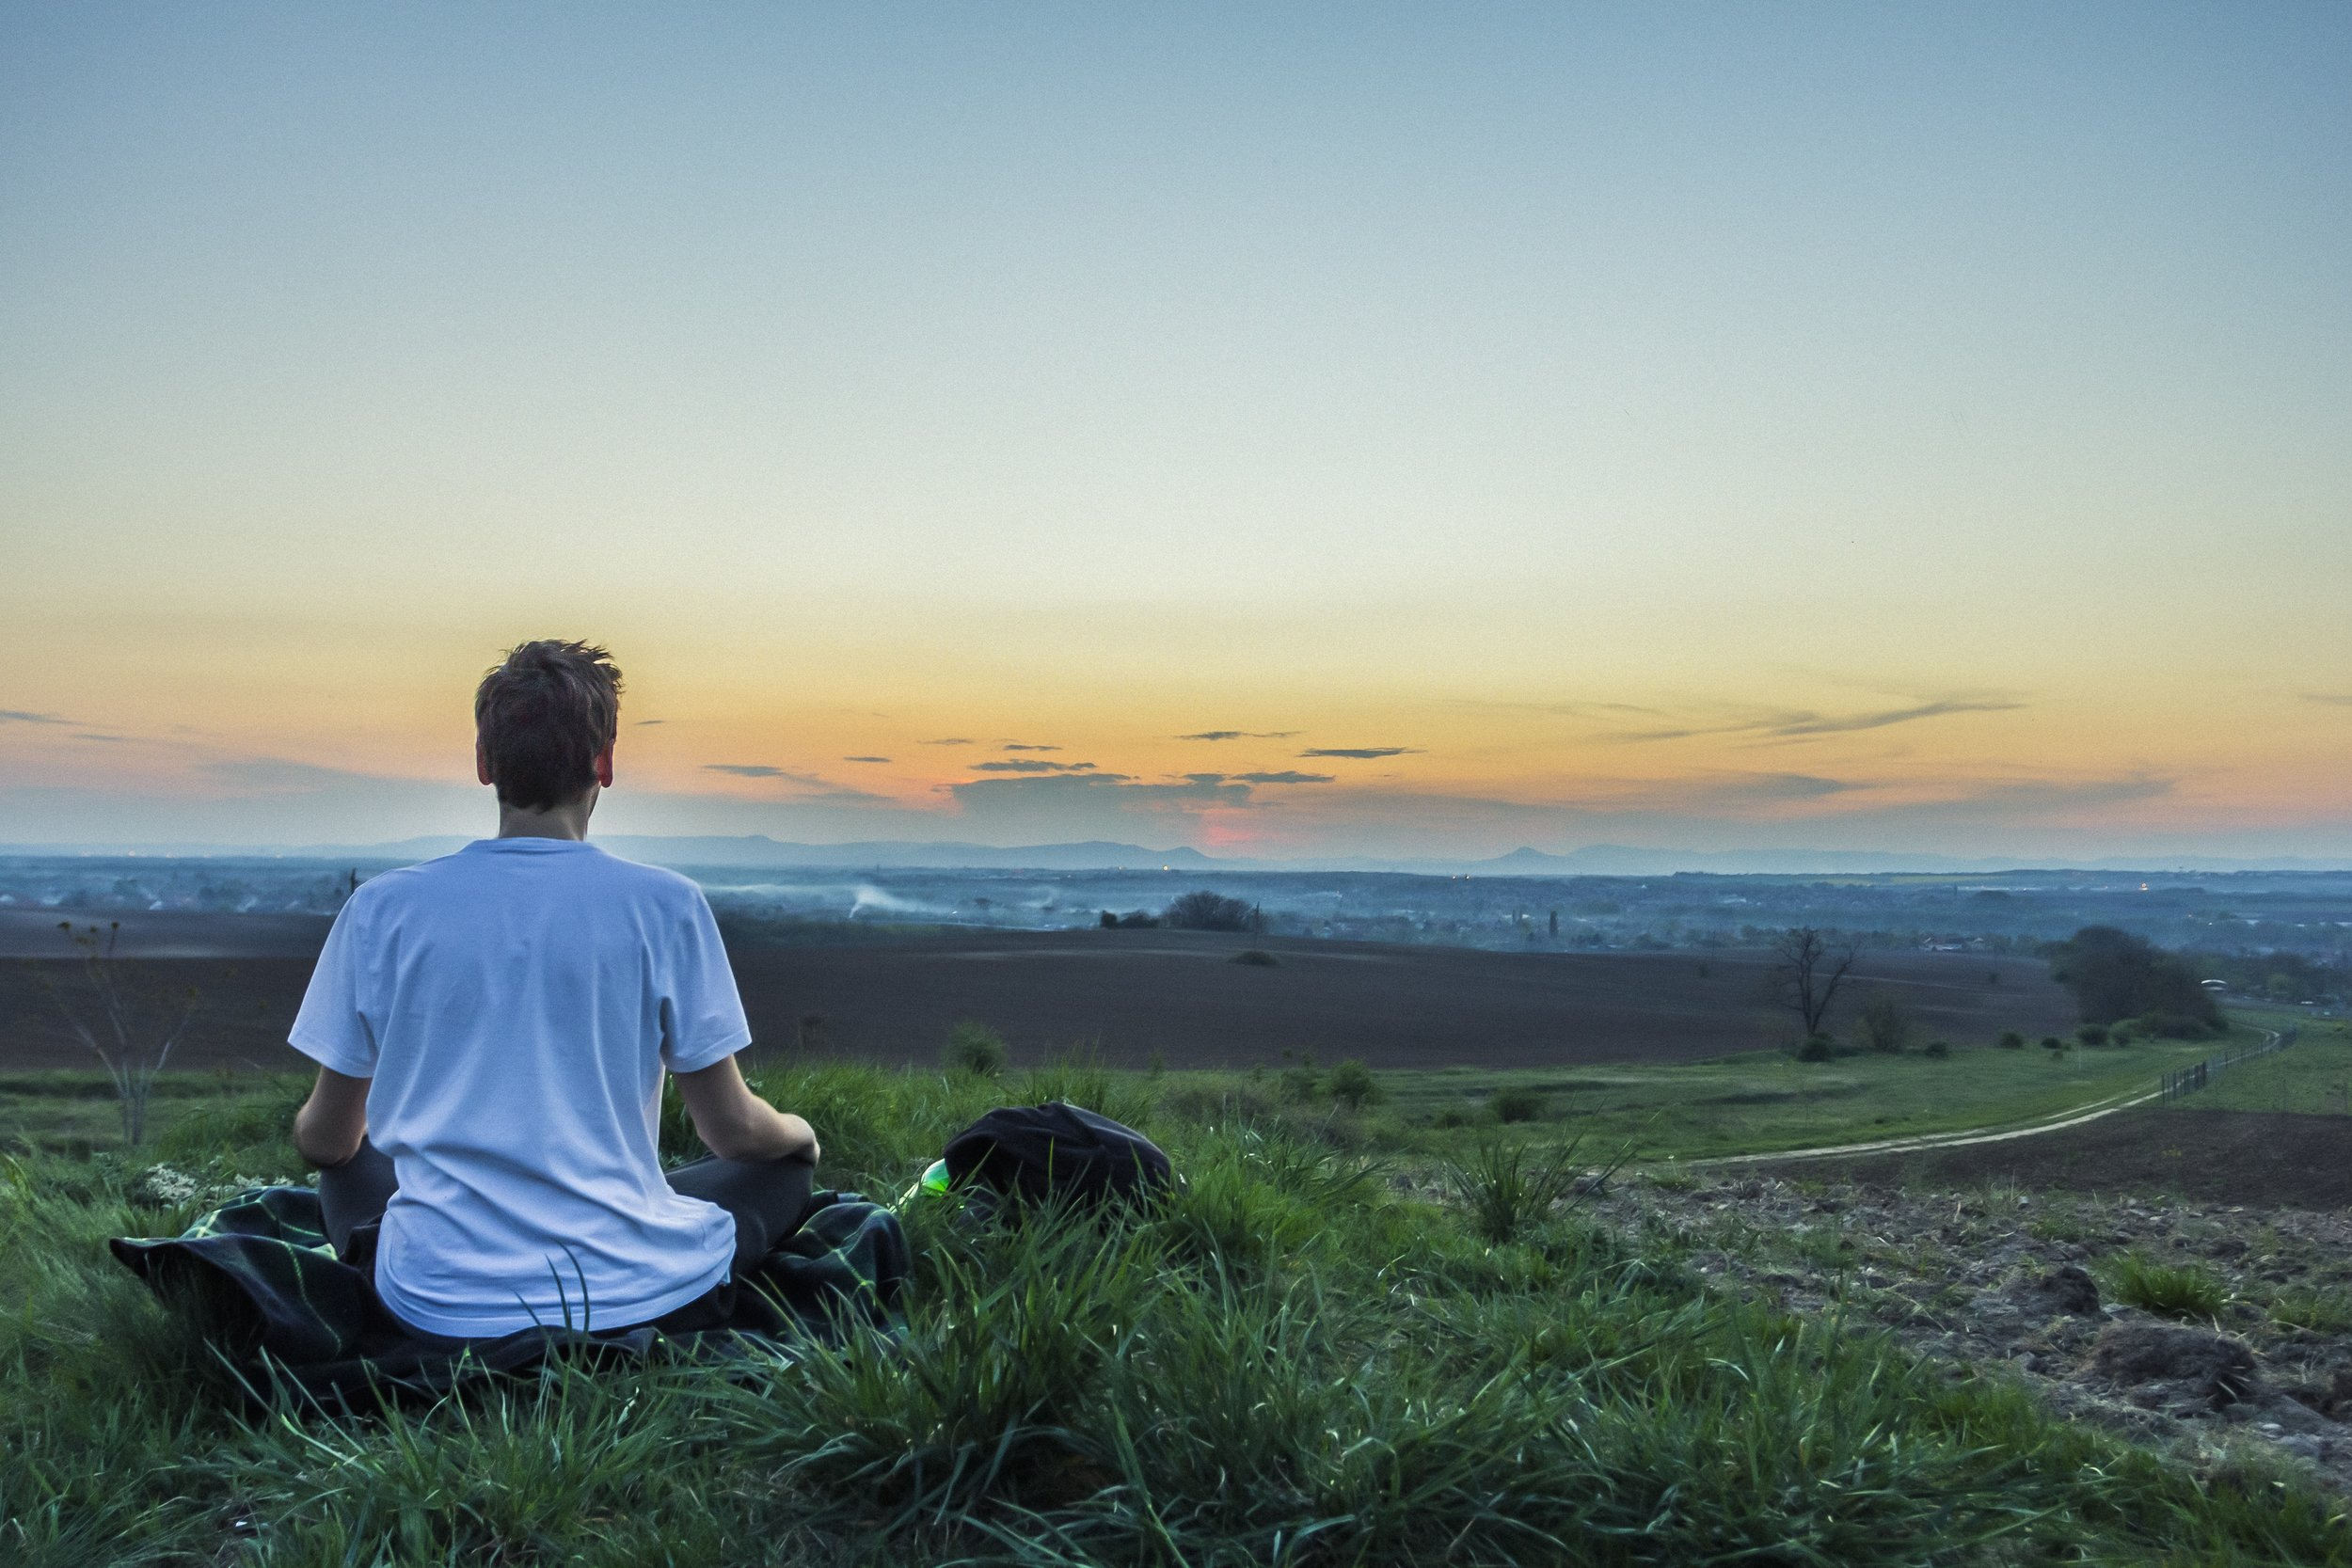 You always have time to meditate. Start with a body-scan, and move into guided meditation.